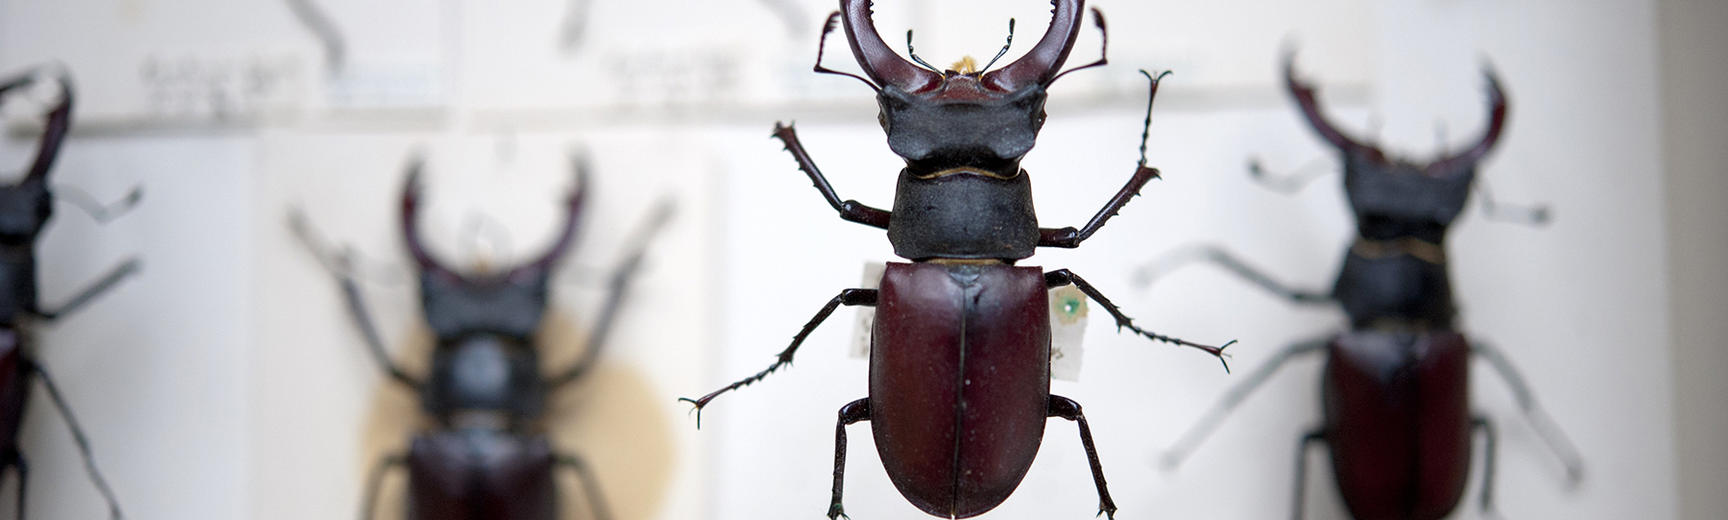 stag beetle oumnh